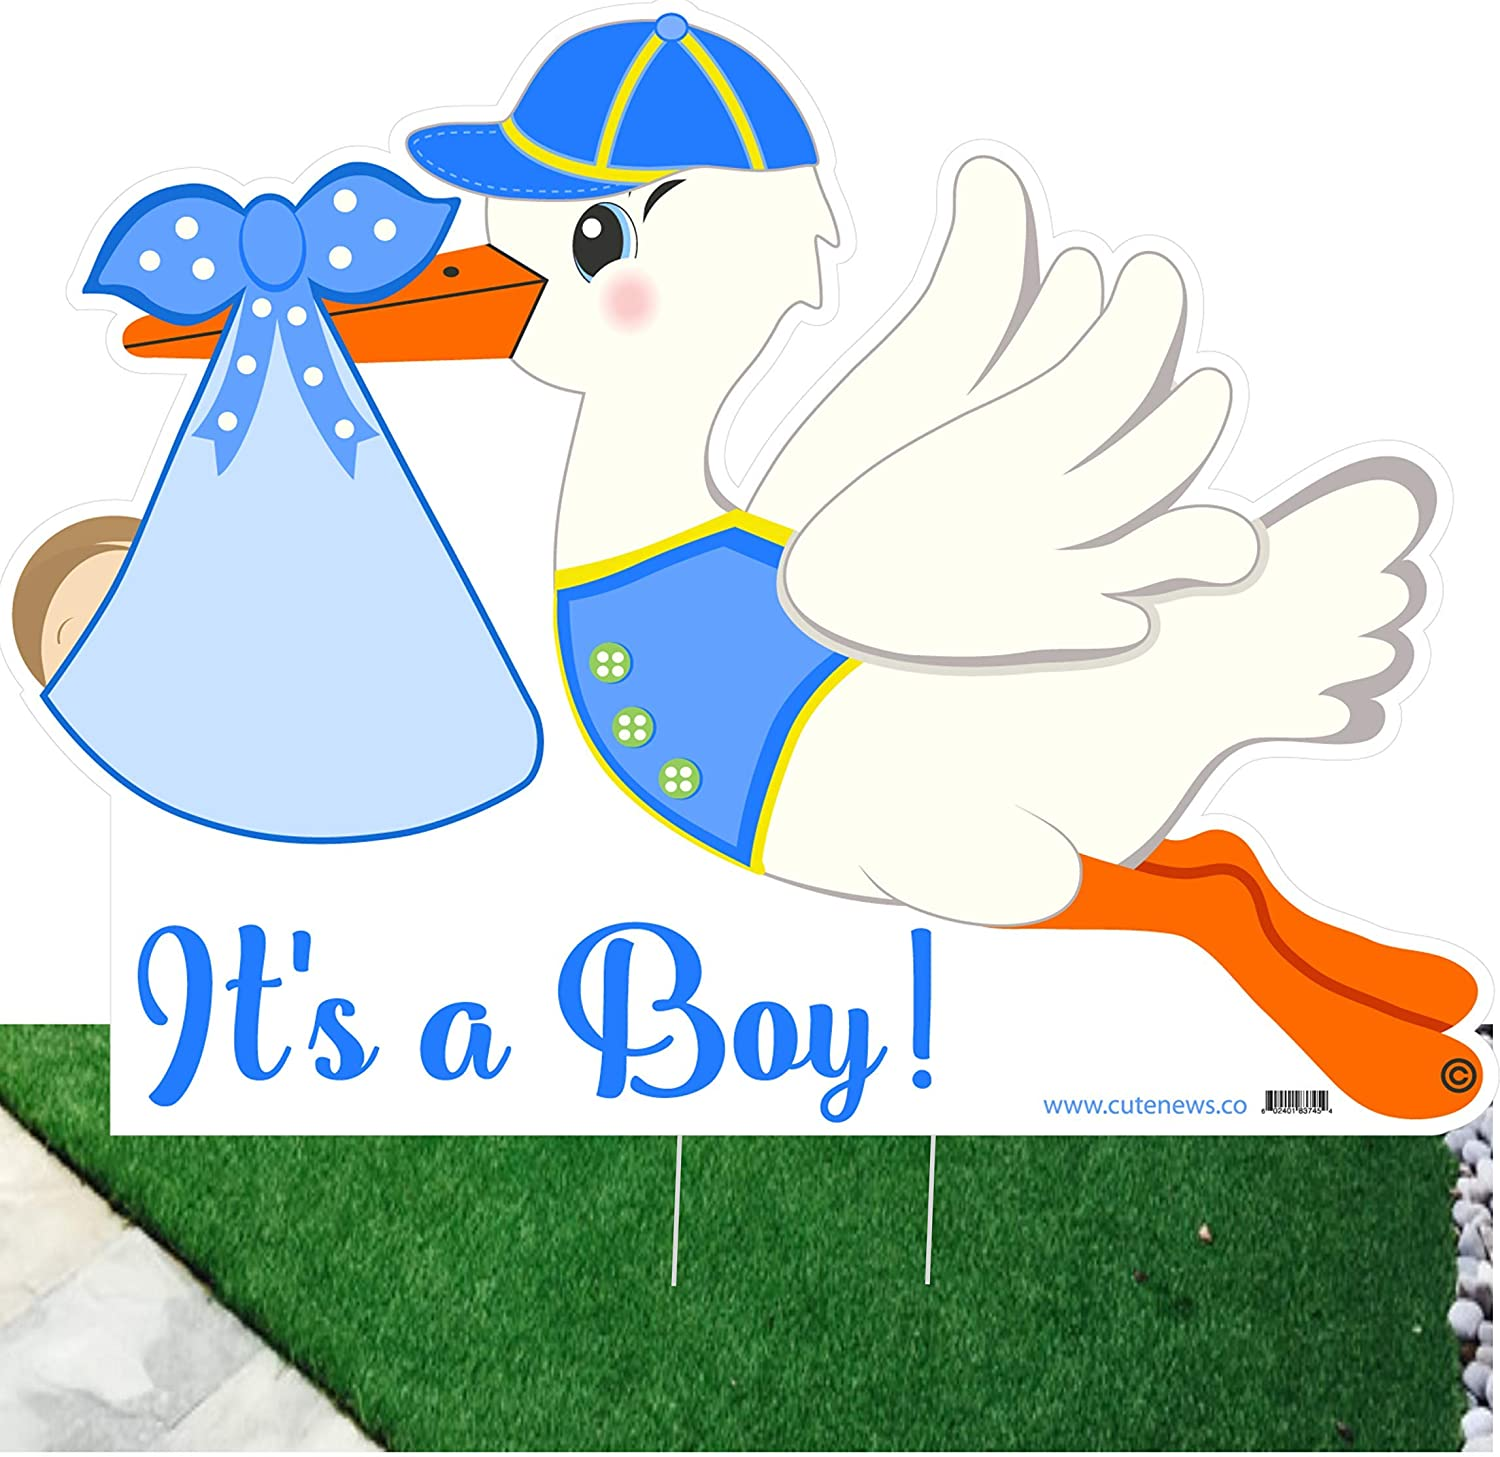 Cute News Outdoor It's a Boy Lawn Stork Decoration - Welcome Home Newborn Baby Yard Sign - Birth Announcement - Special Delivery Shower Party Decor - Blue